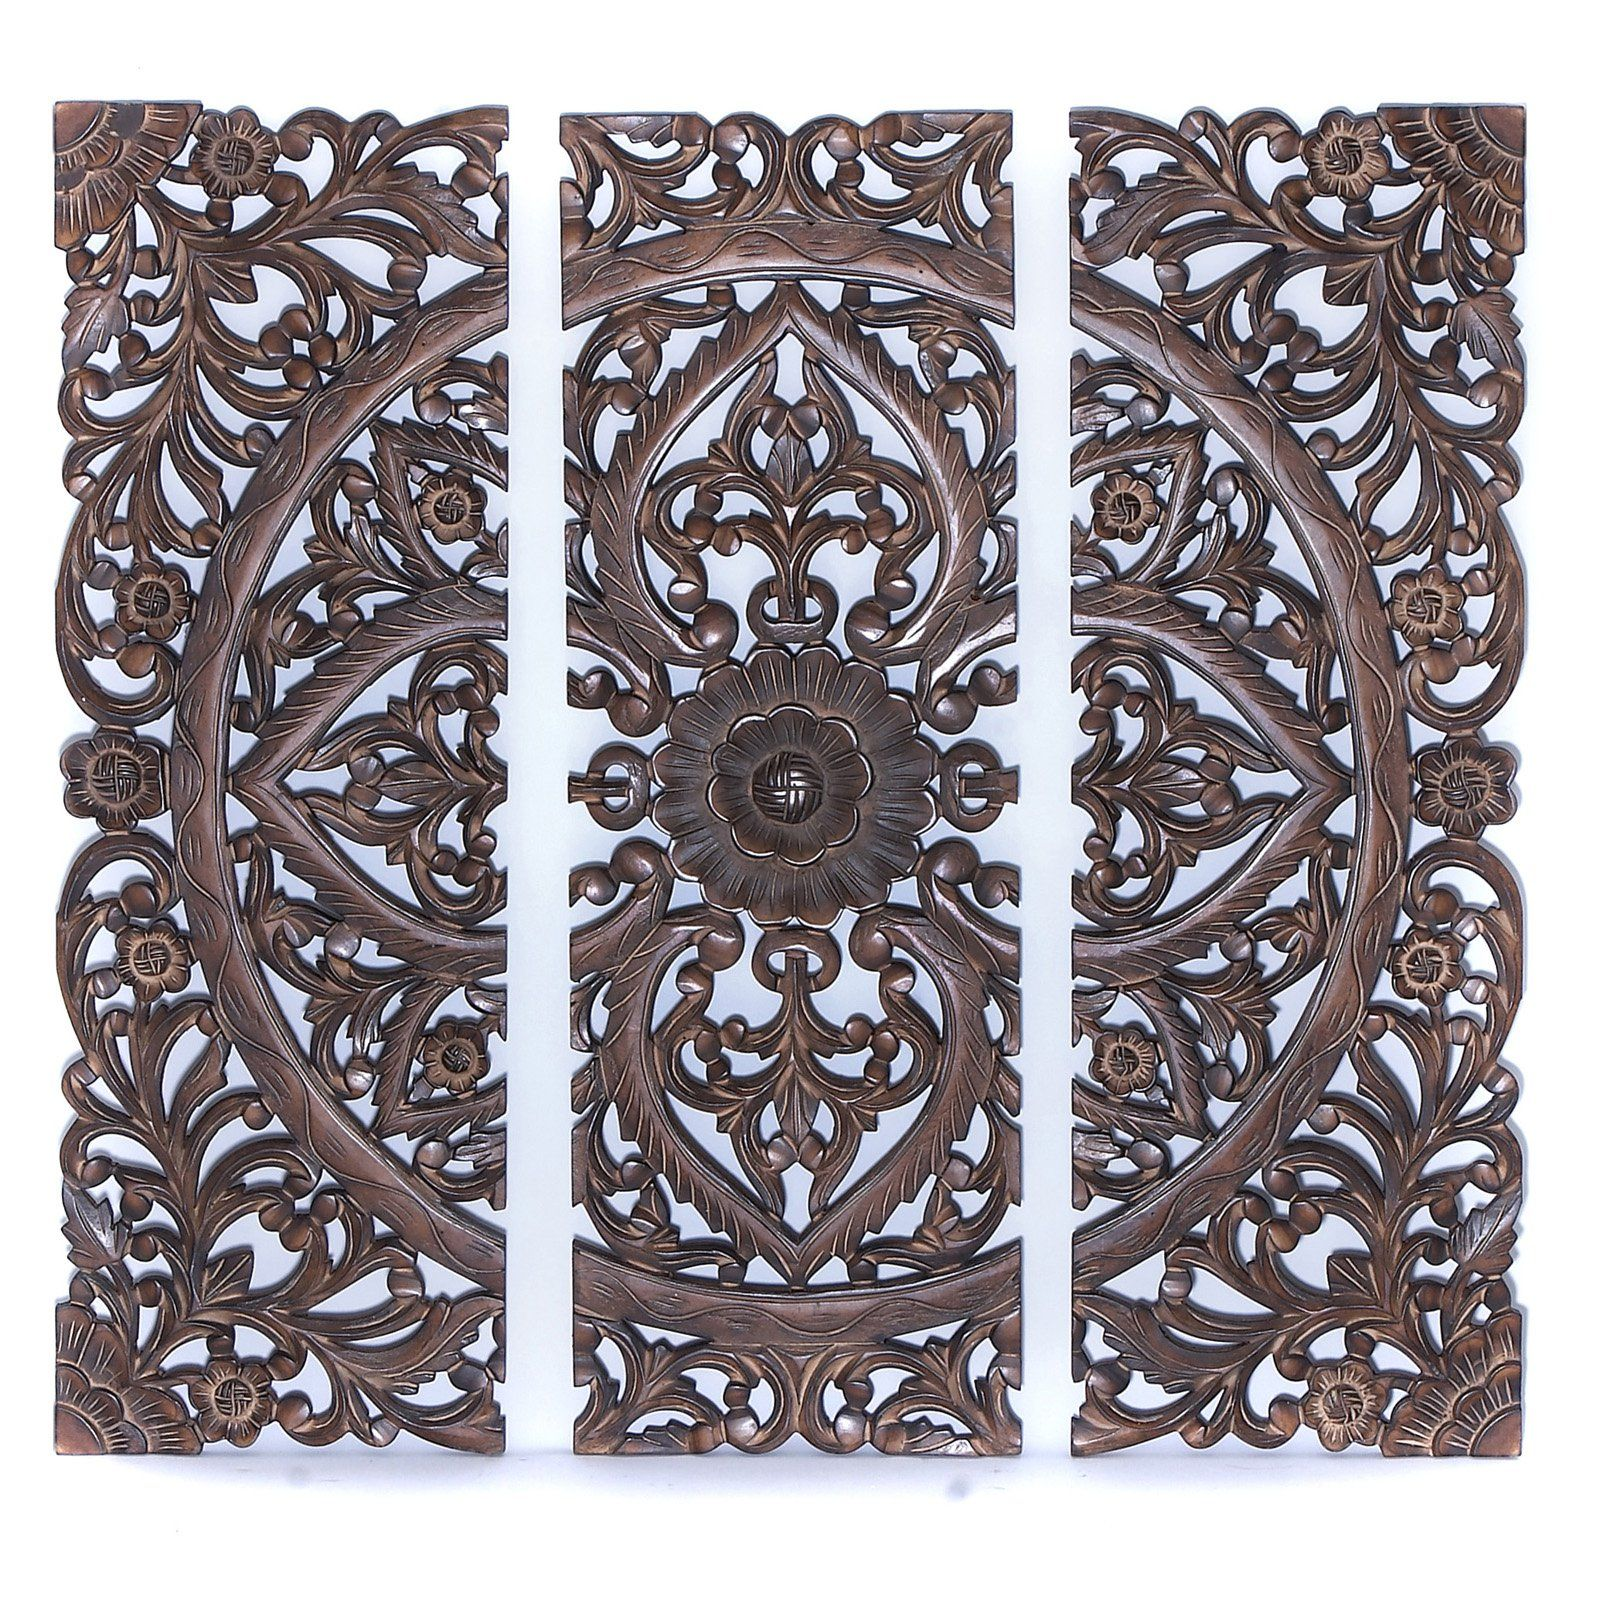 Carved Wooden Wall Plaque Set Of 3 Living Room Hallway